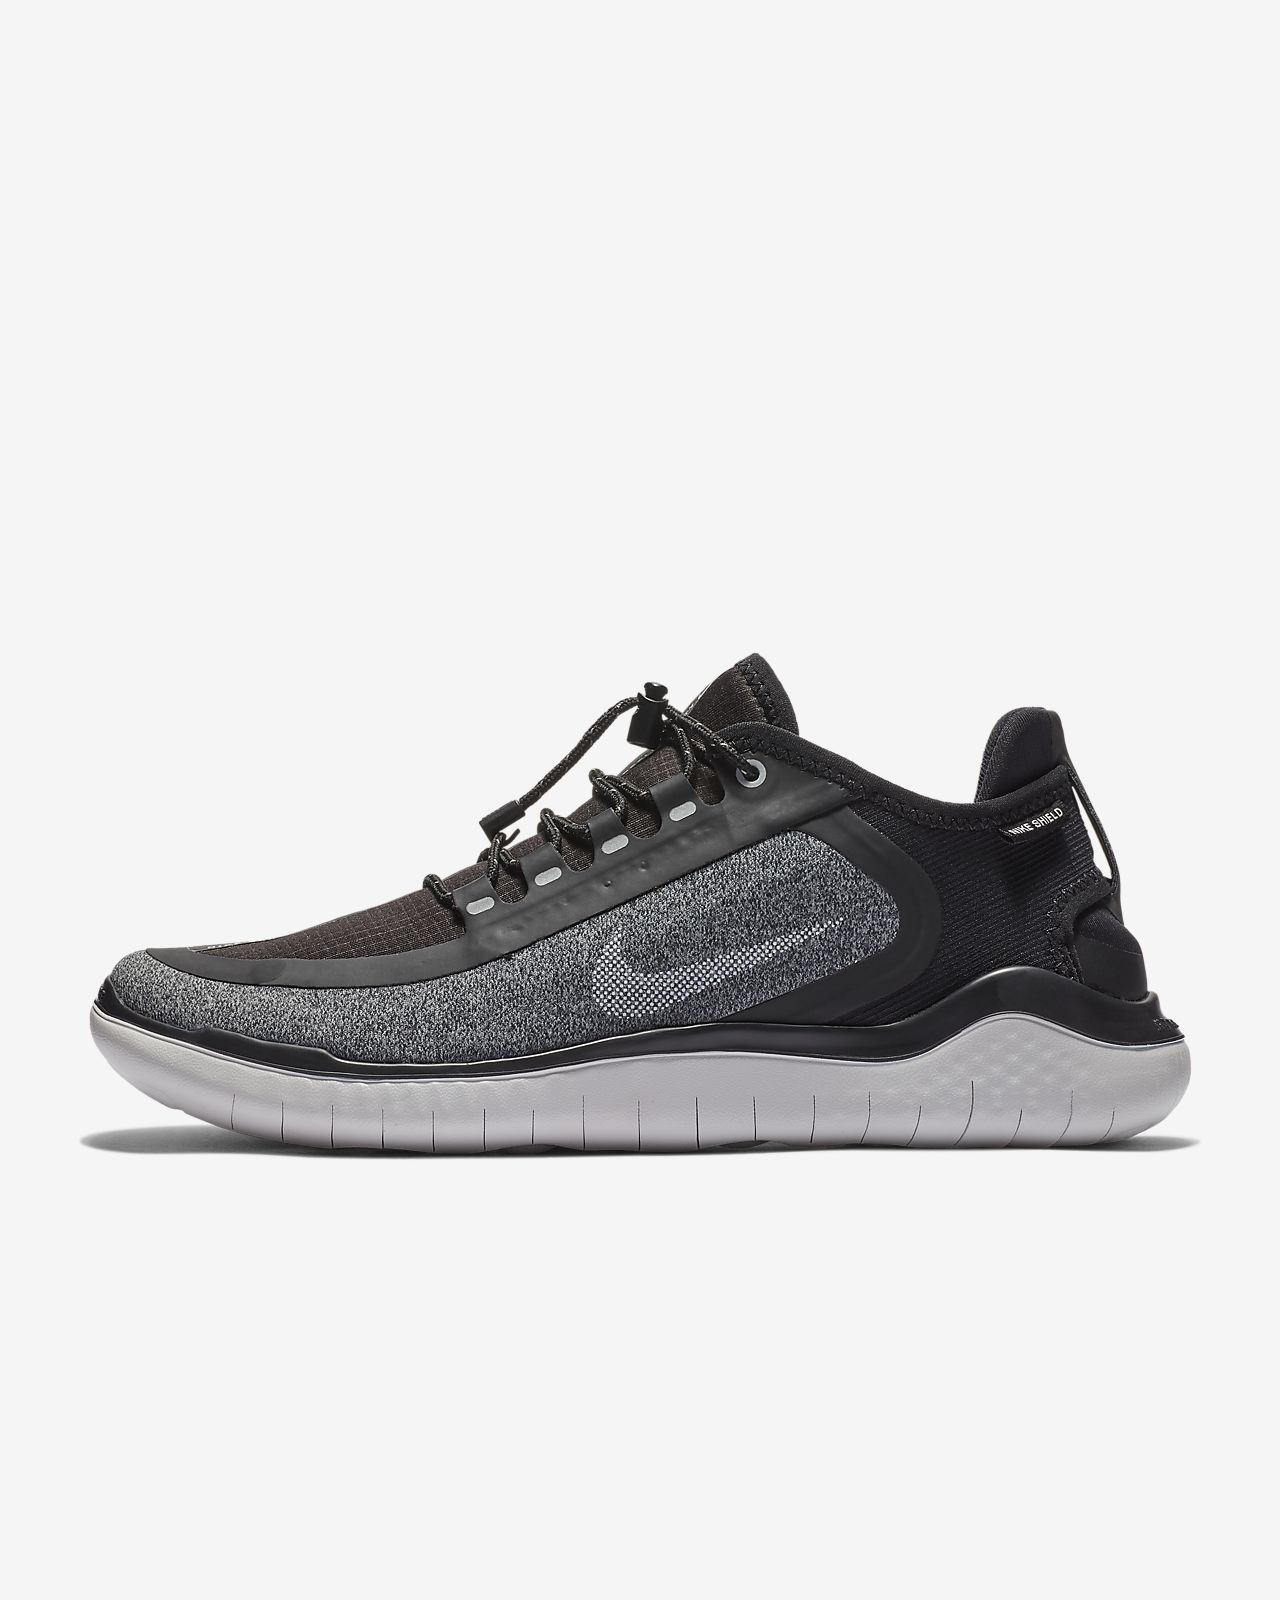 new concept ff700 805e3 Water Hardloopschoen Nike Free Rn Voor 2018 Shield Dames Repellent Ybfy76vg